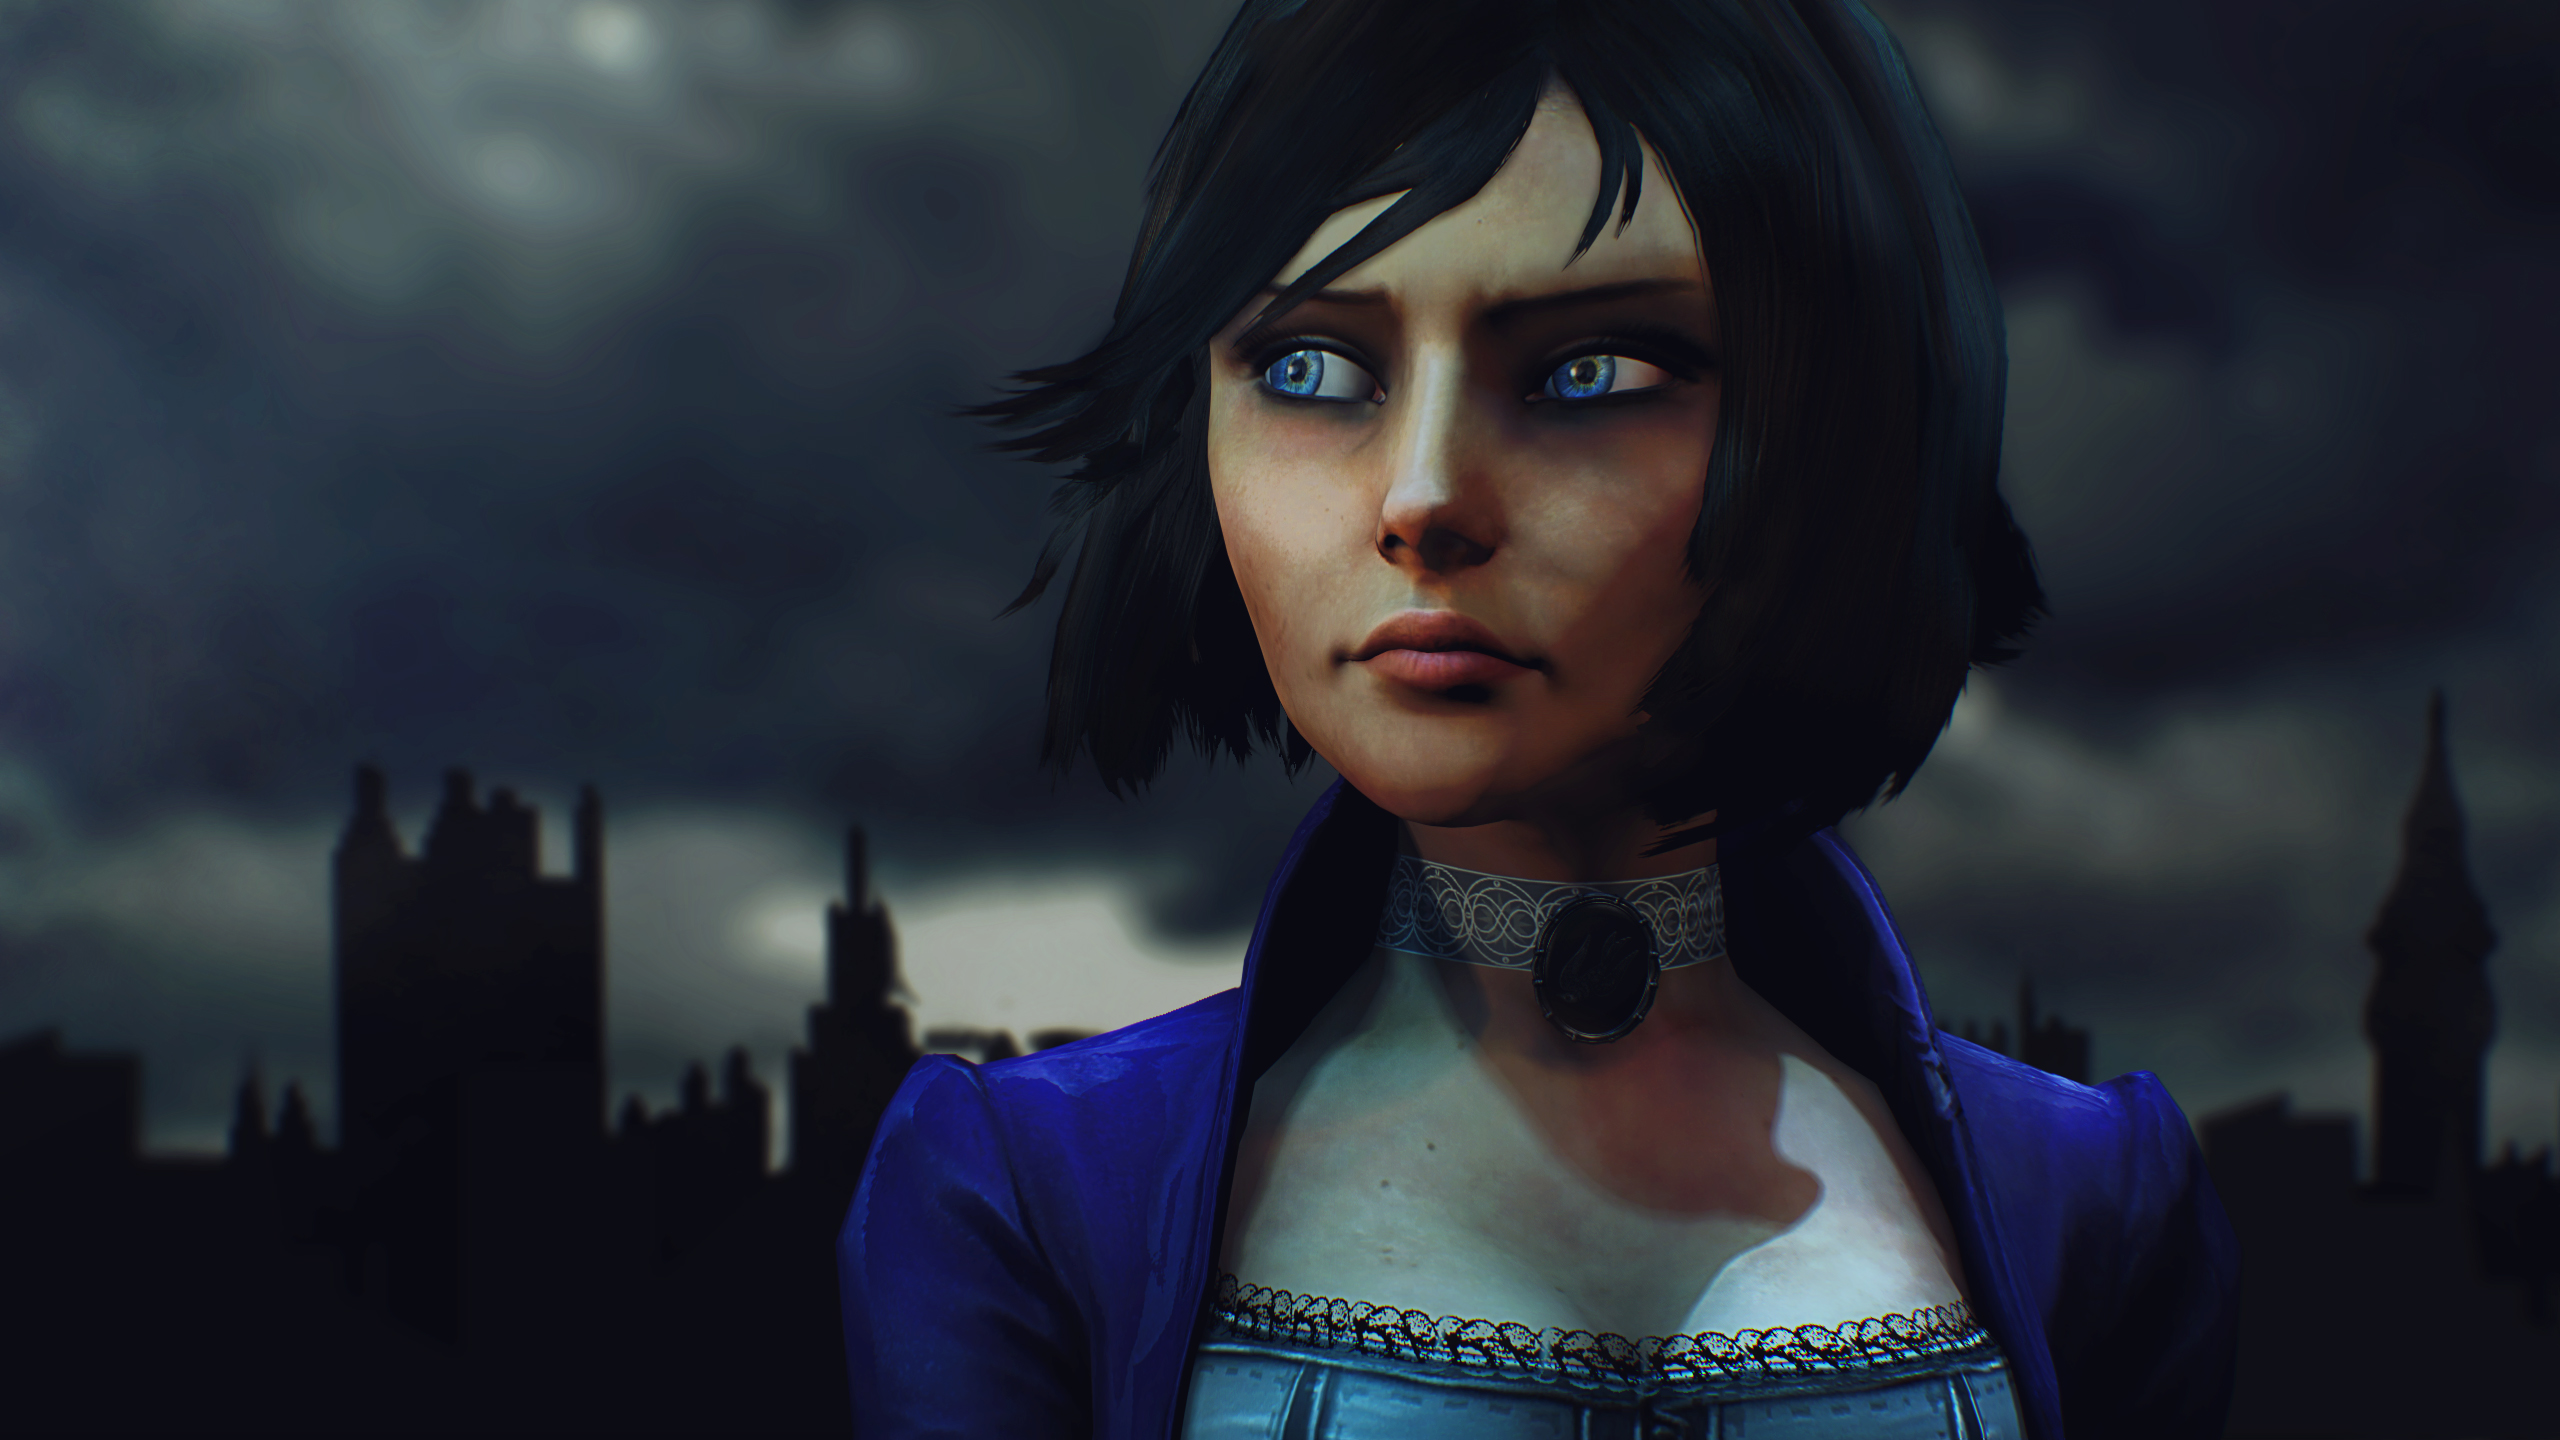 Bioshock infinite elizabeth by dp films on deviantart bioshock infinite elizabeth by dp films voltagebd Image collections